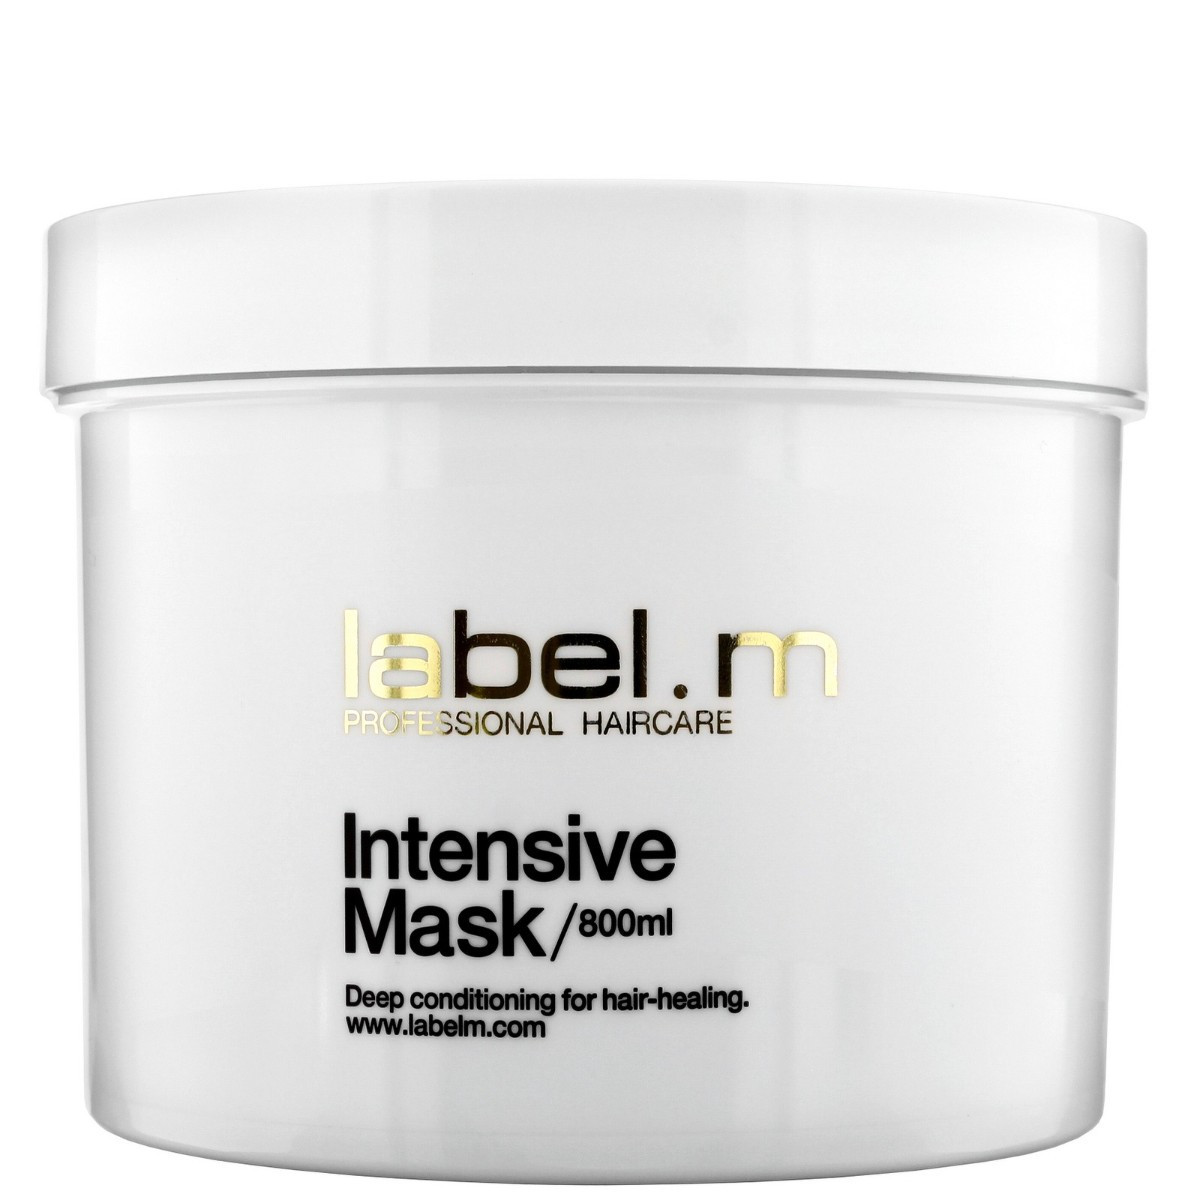 Label.m Intensive Maska 800ml